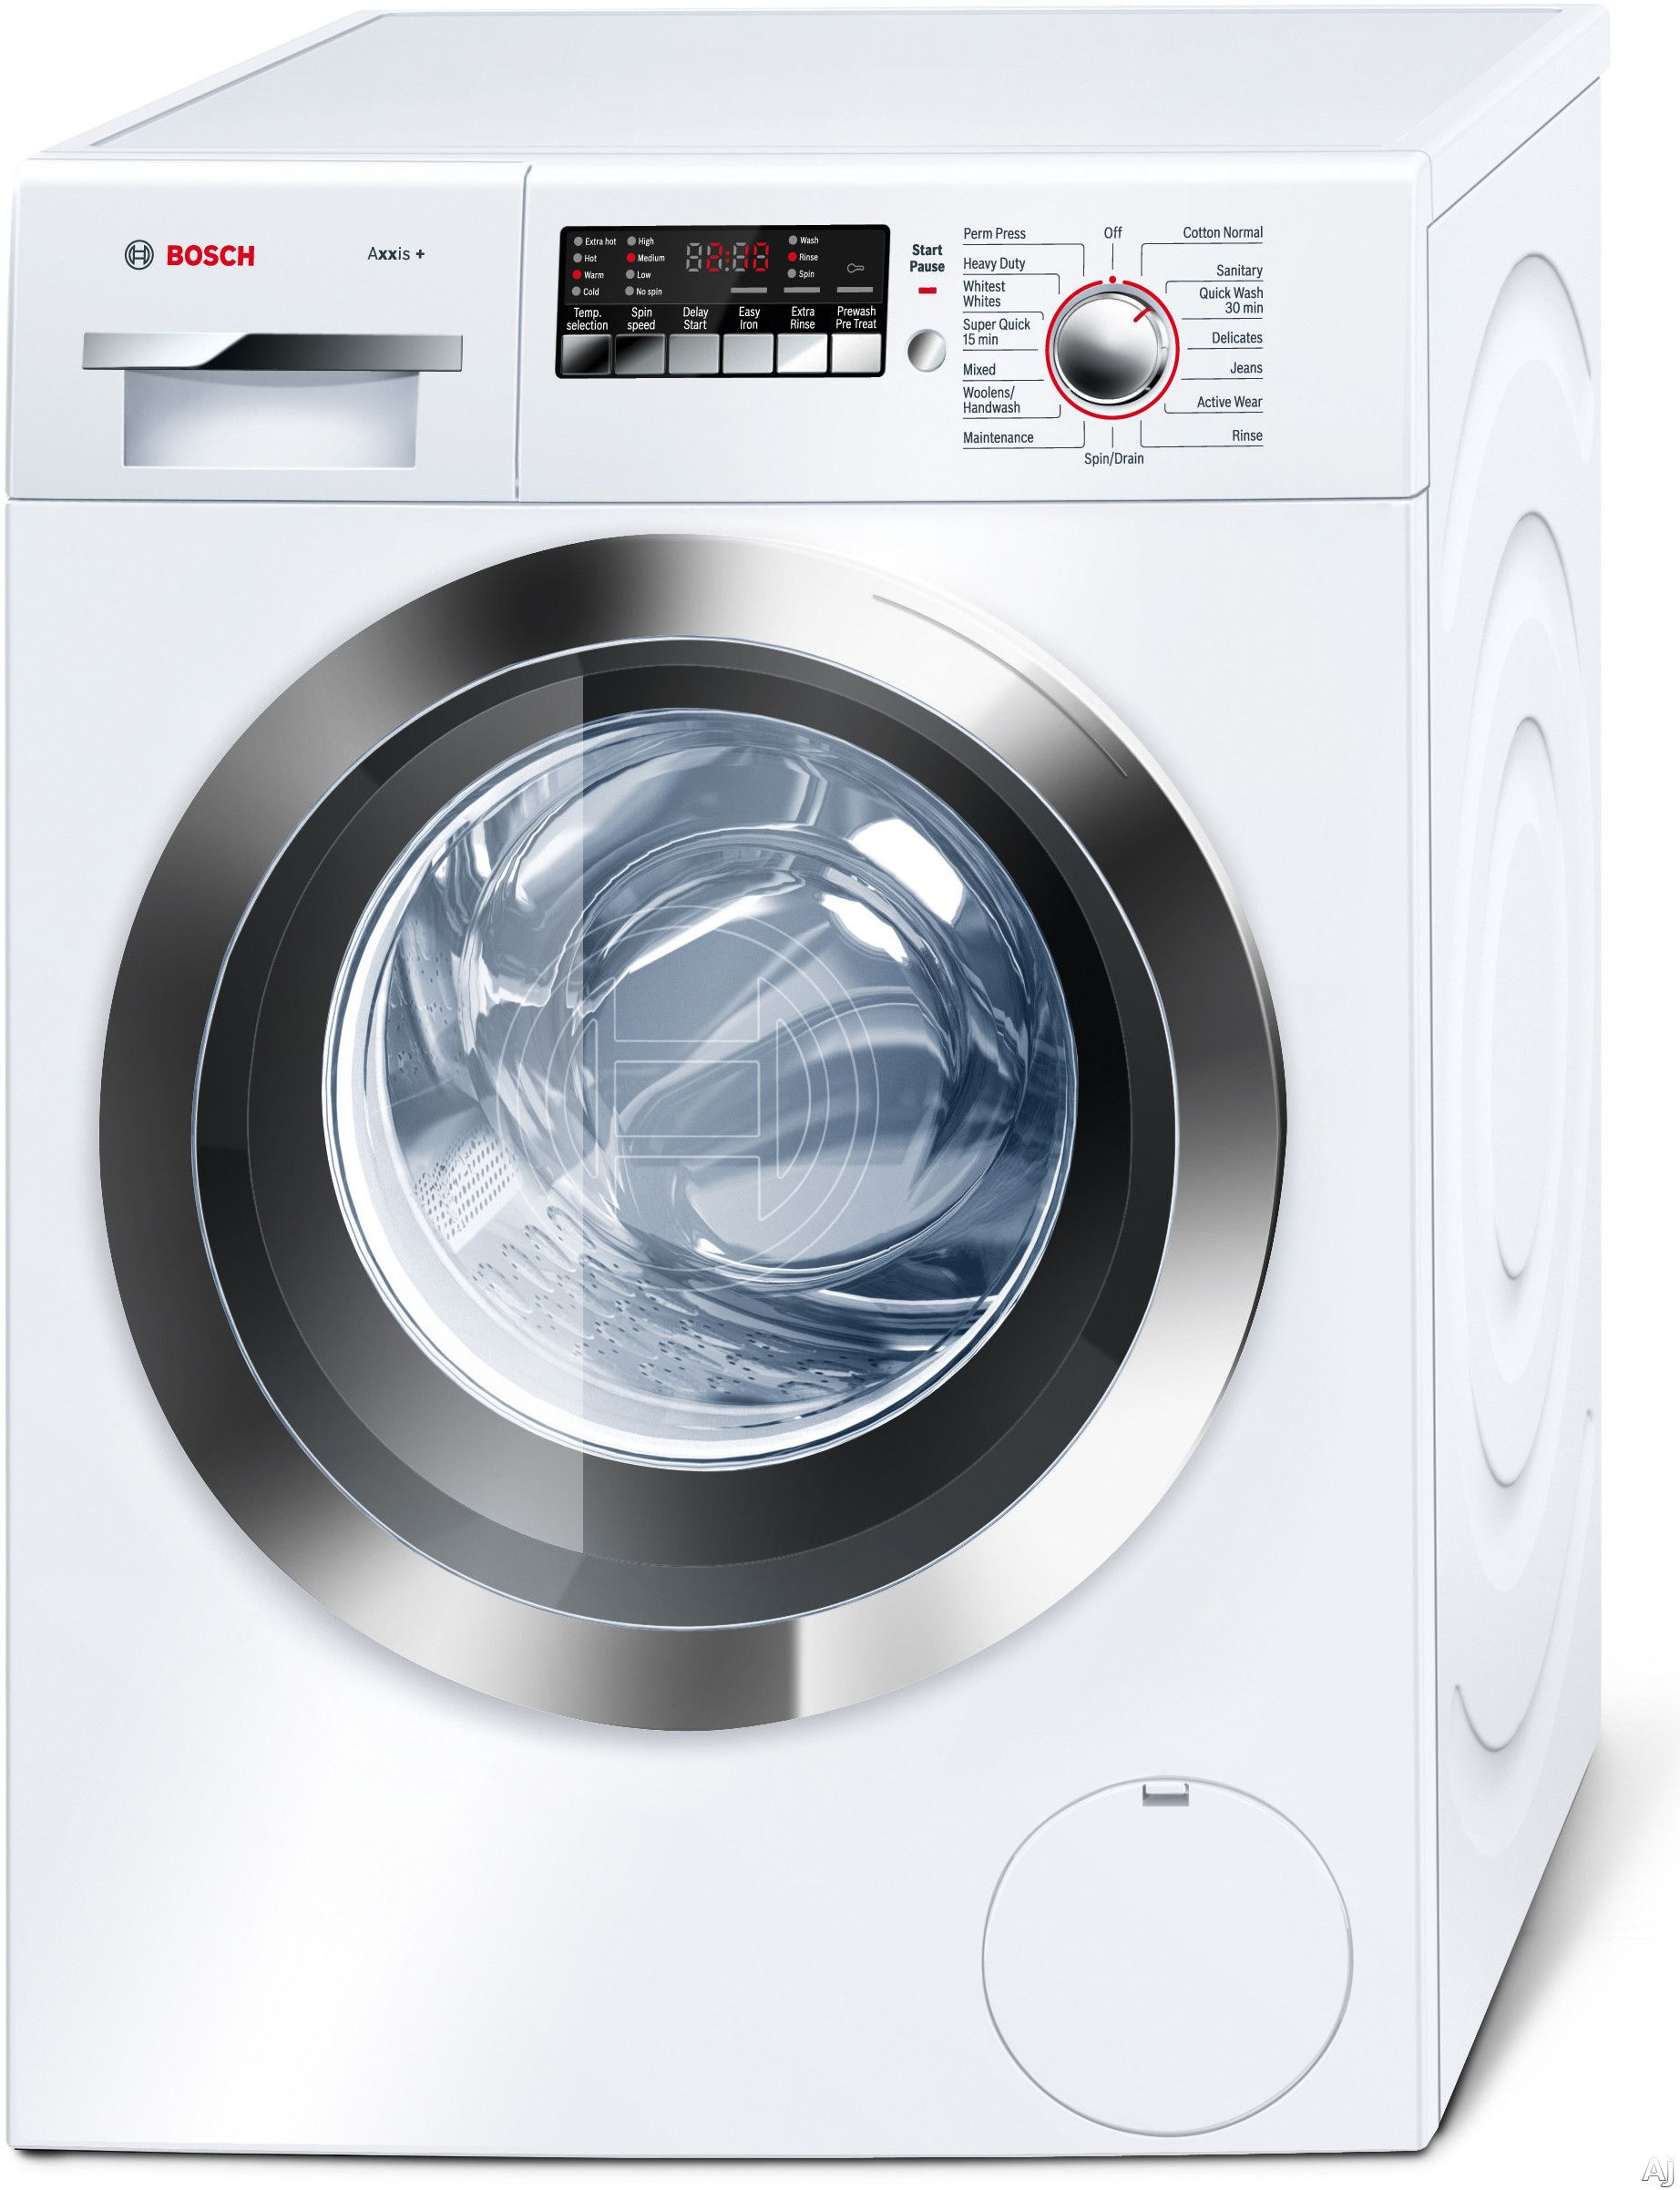 Bosch Axxis Plus Series WAP24202UC - Front-Load Washer: Remodelista